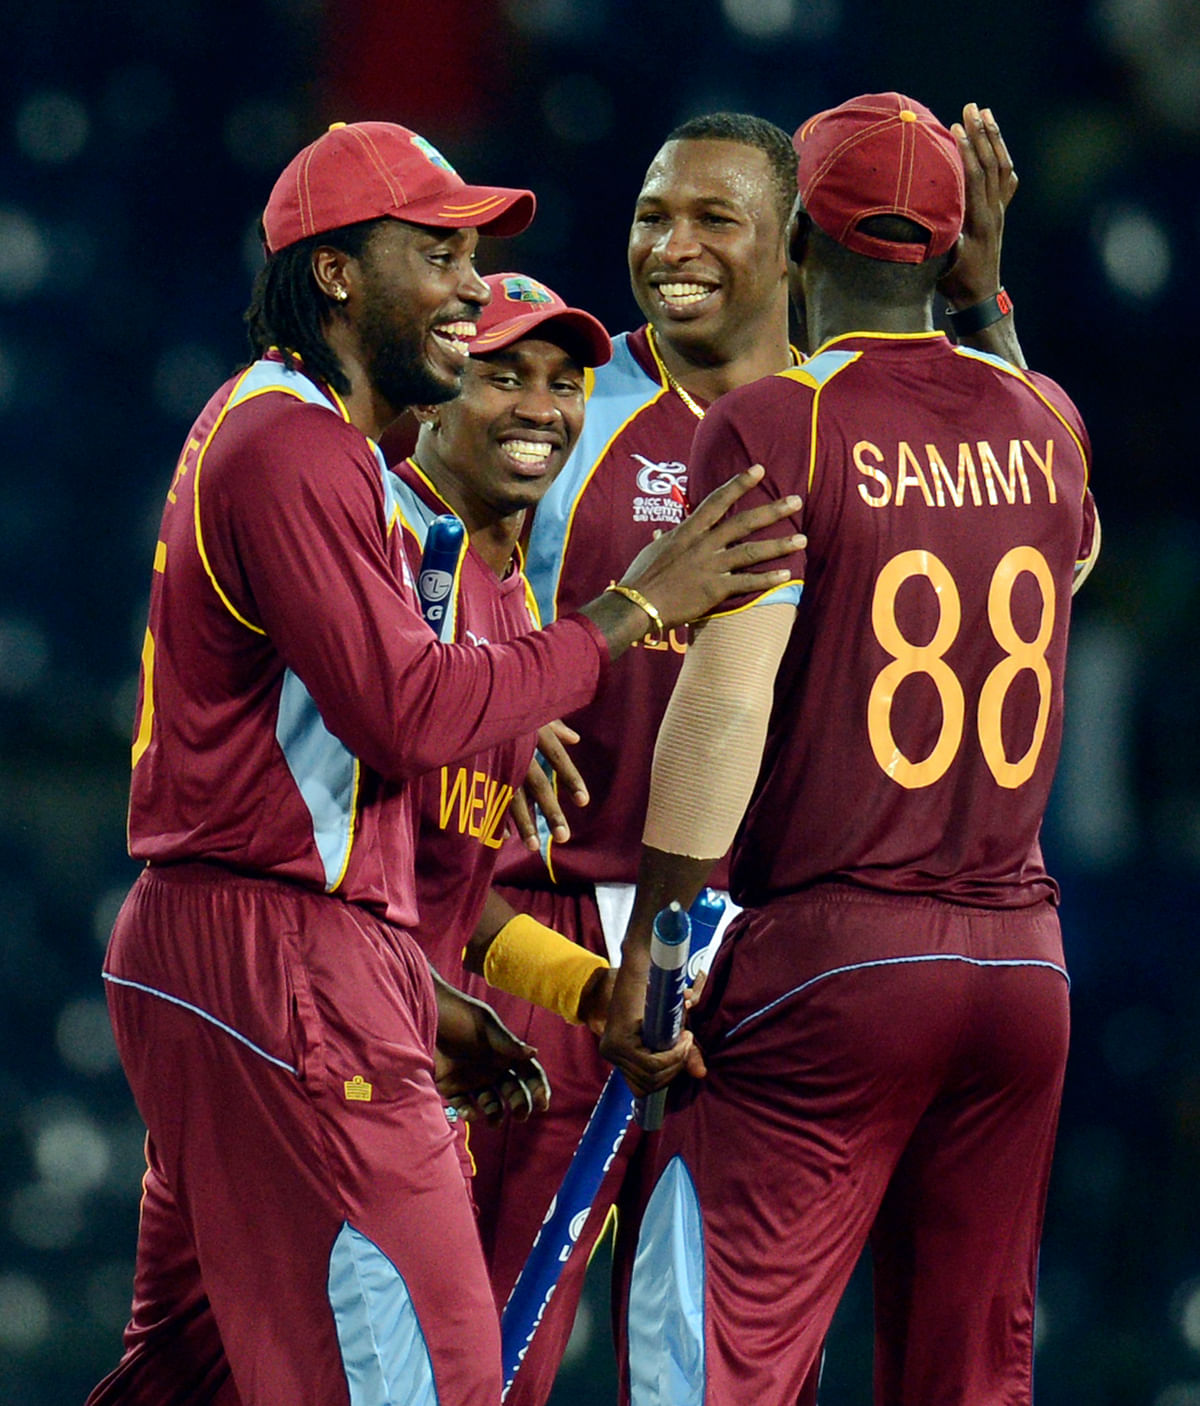 Pollard and Bravo have been left out of the side since they were dropped for the ODI series against South Africa in January, earlier this year. (Photo: Reuters)